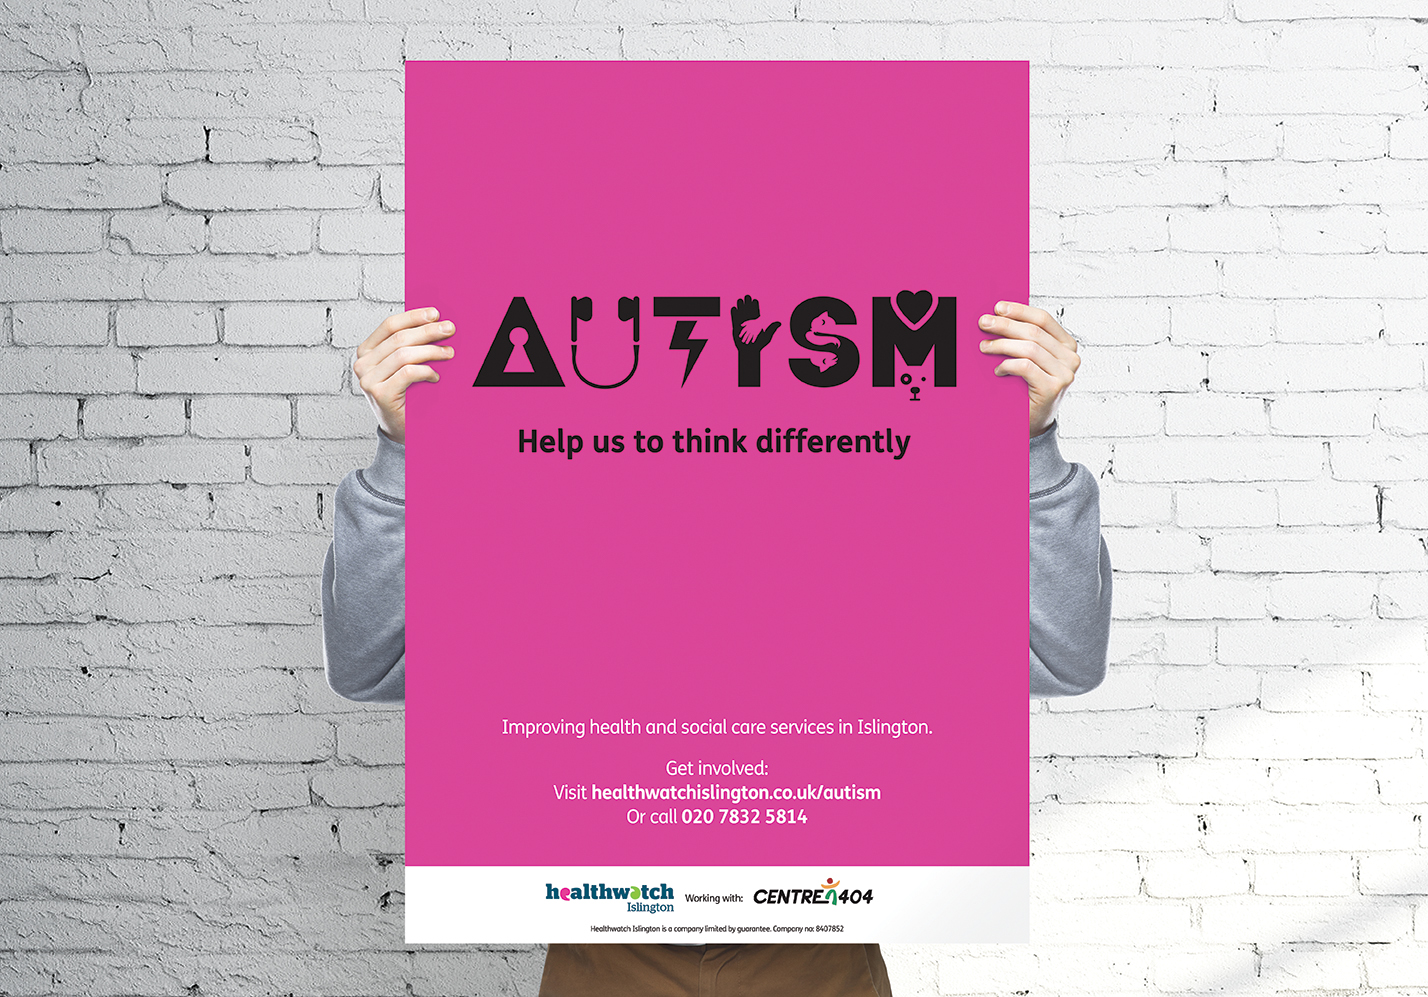 Healthwatch Autism campaign, designed by West Creative